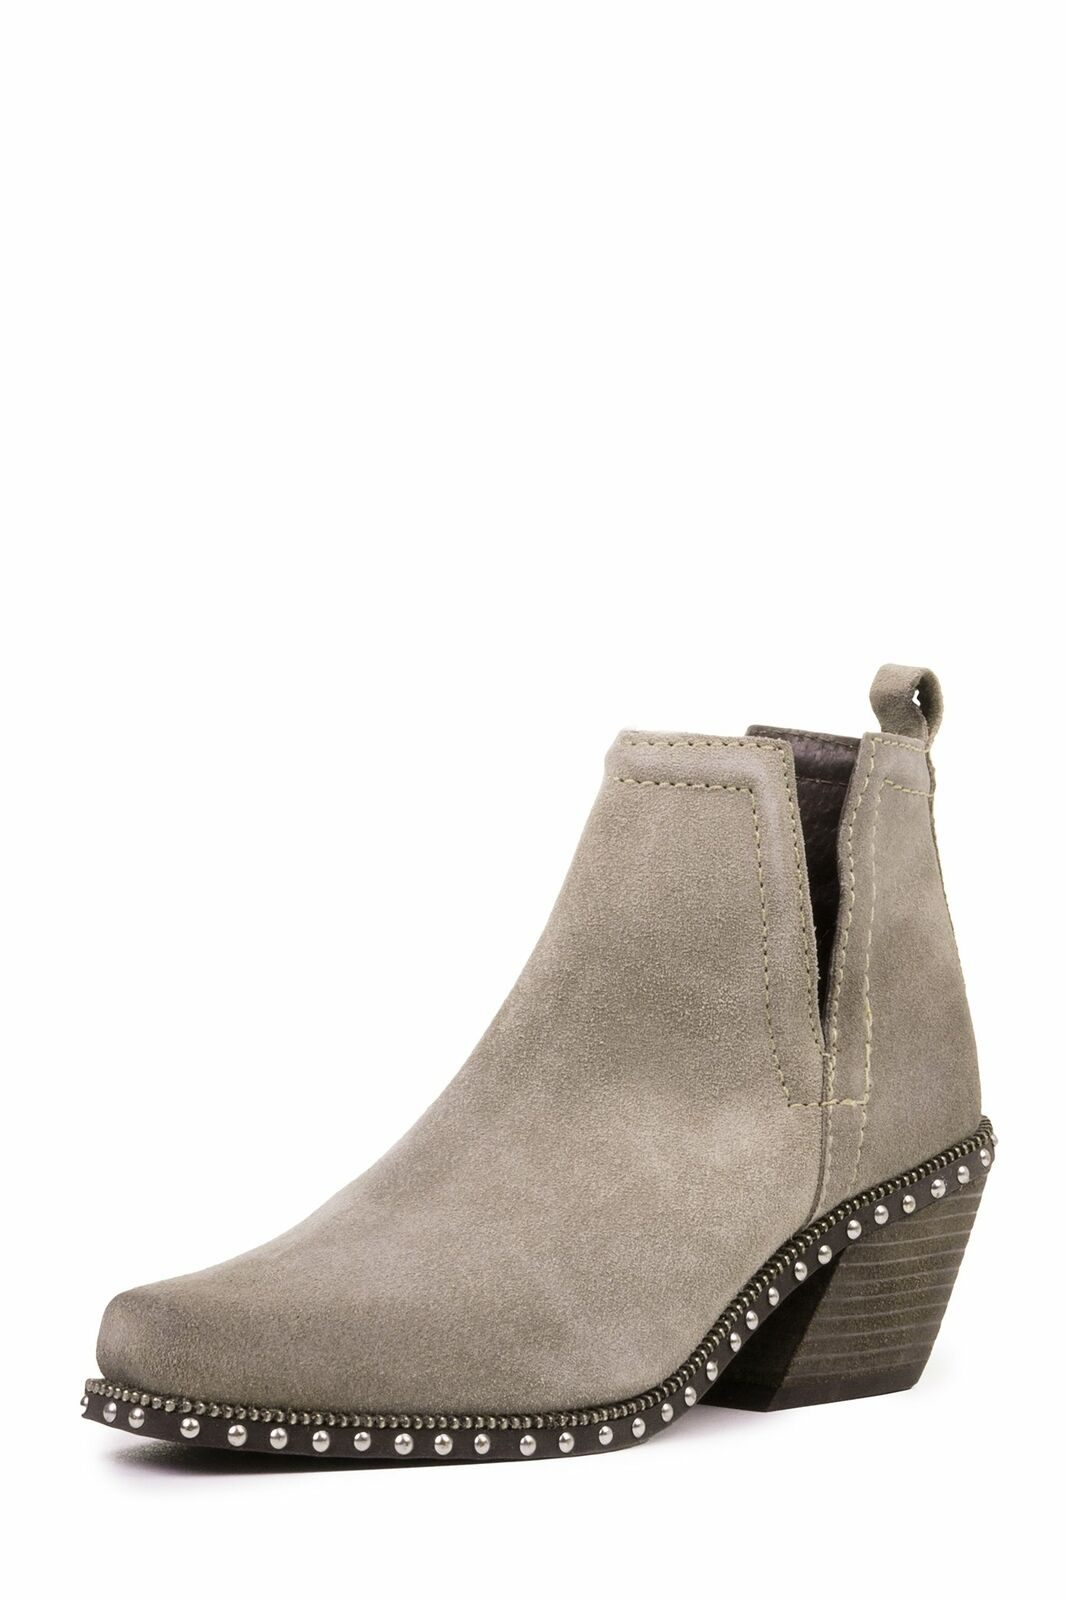 Jeffrey Campbell TUMARI Cutout Ankle Boot, Taupe Oiled Suede (10)